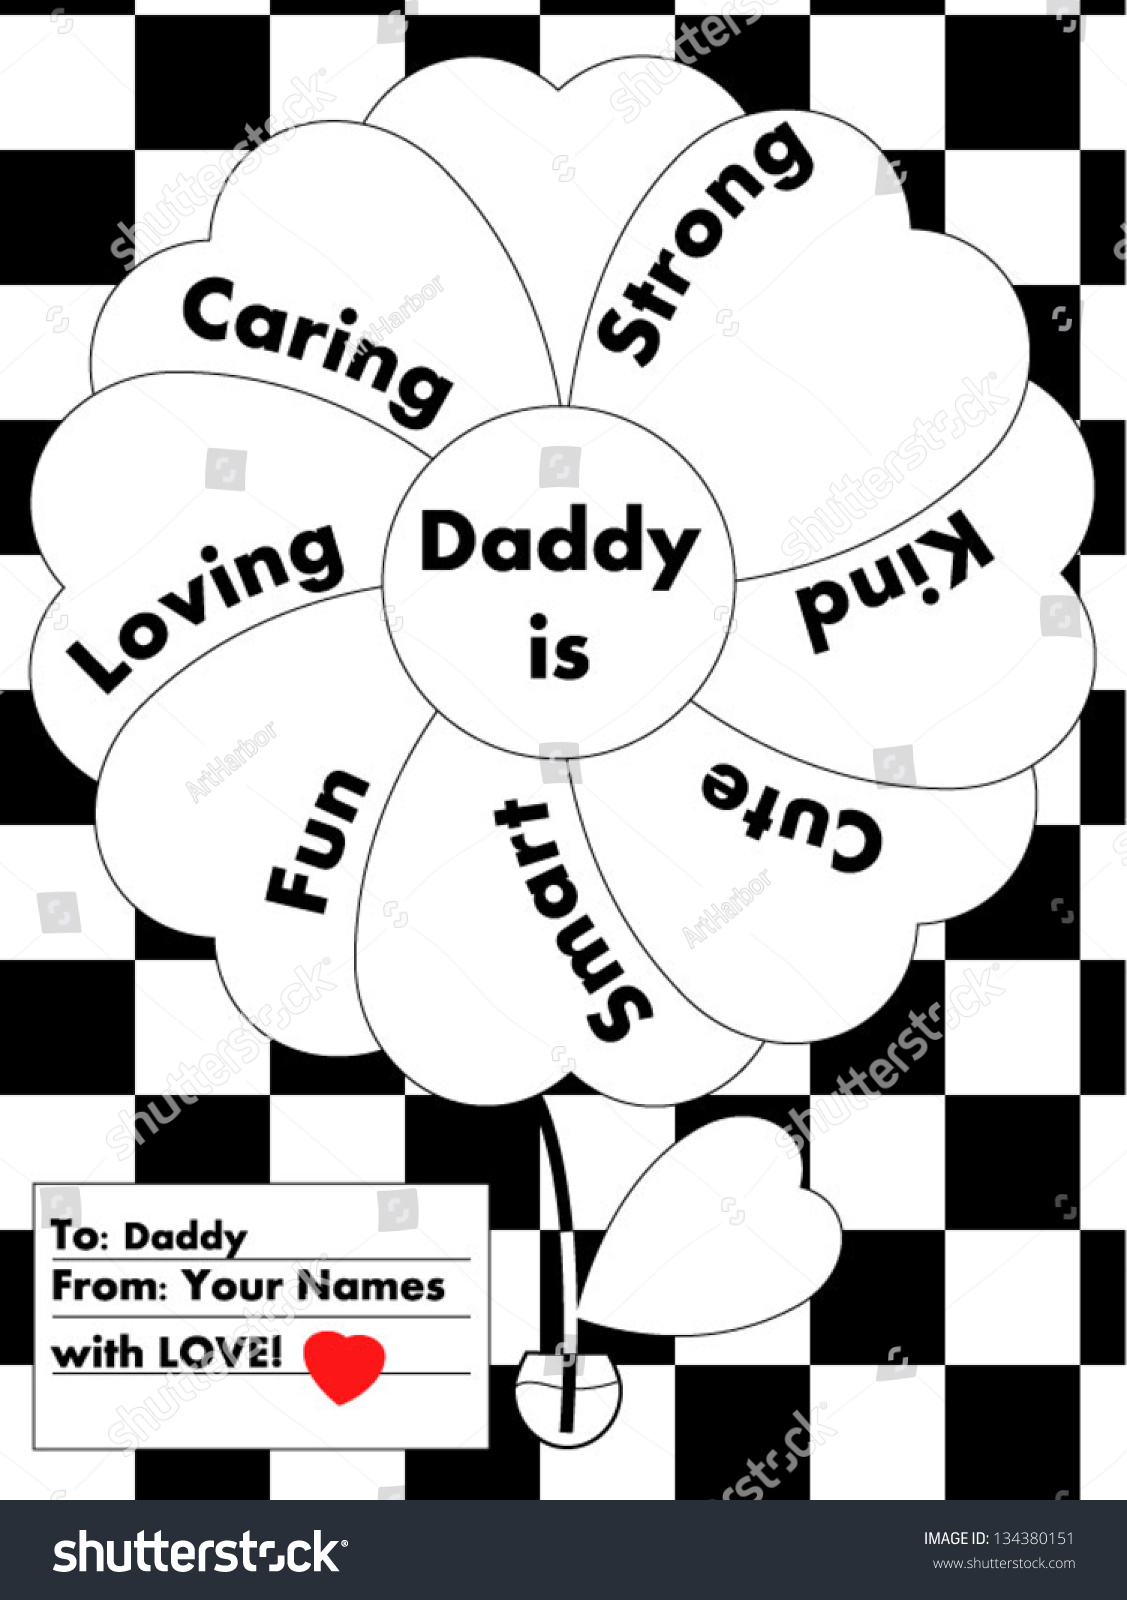 Colorityourself Love Letter Daddy Stock Vector (Royalty Free